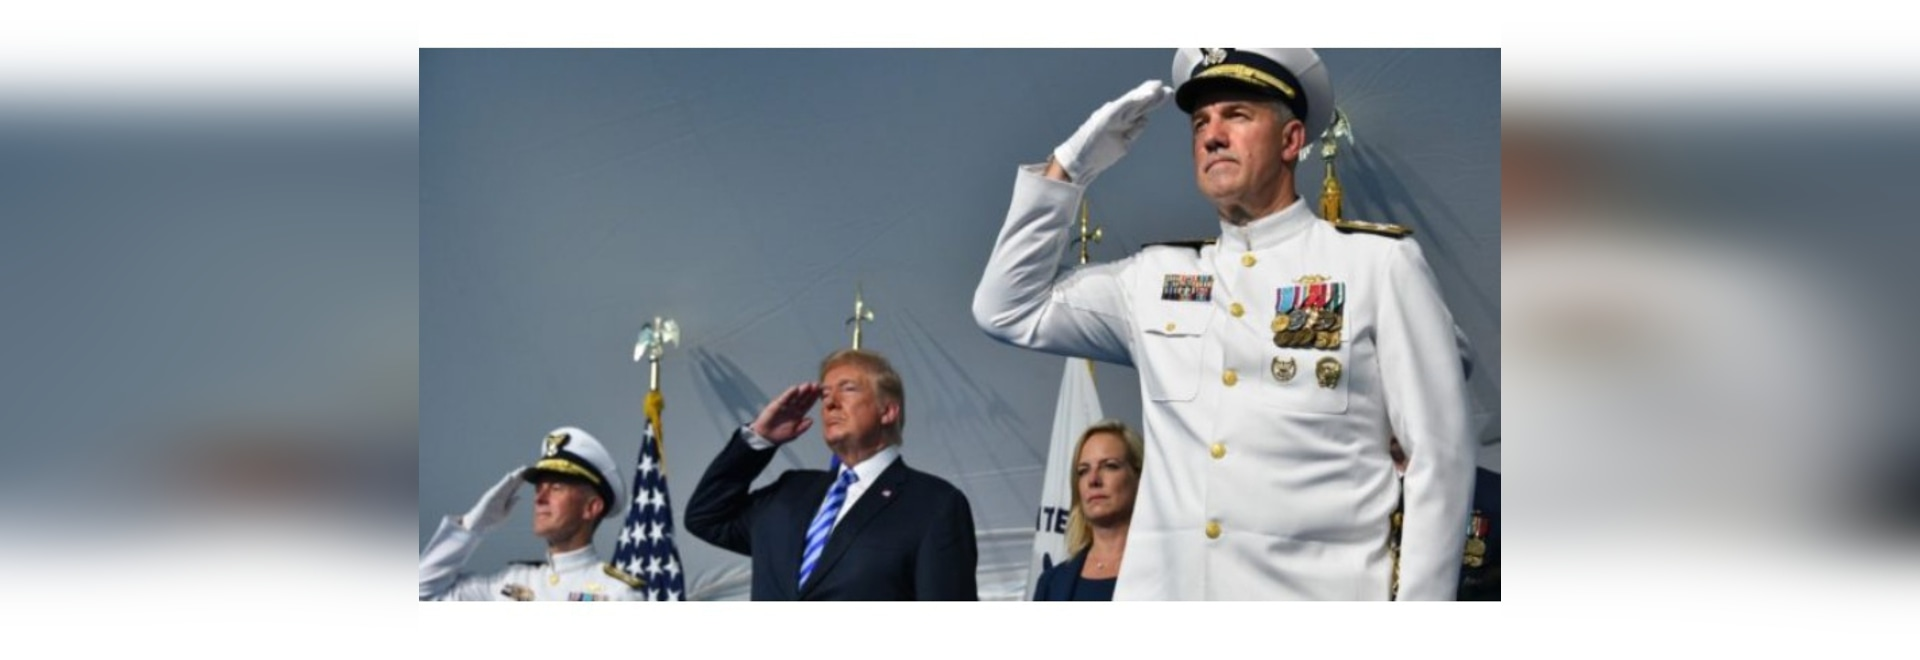 Adm. Paul Zukunft (left), President Donald Trump, Department of Homeland Security Secretary Kirstjen Nielsen and Adm. Karl Schultz render honors during a change of command ceremony at Coast Guard H...